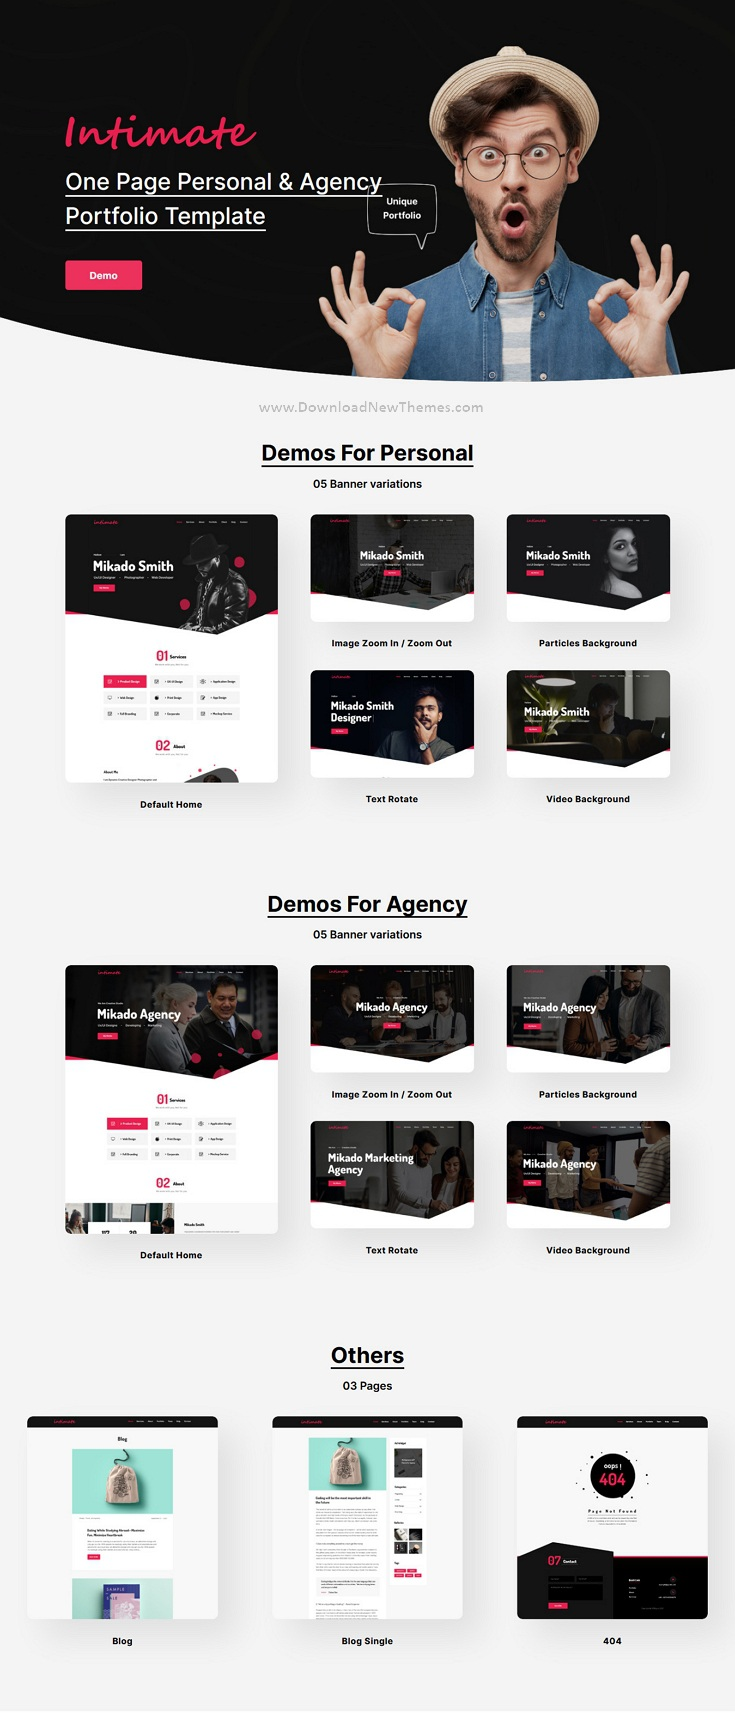 One Page Personal & Agency Portfolio Template